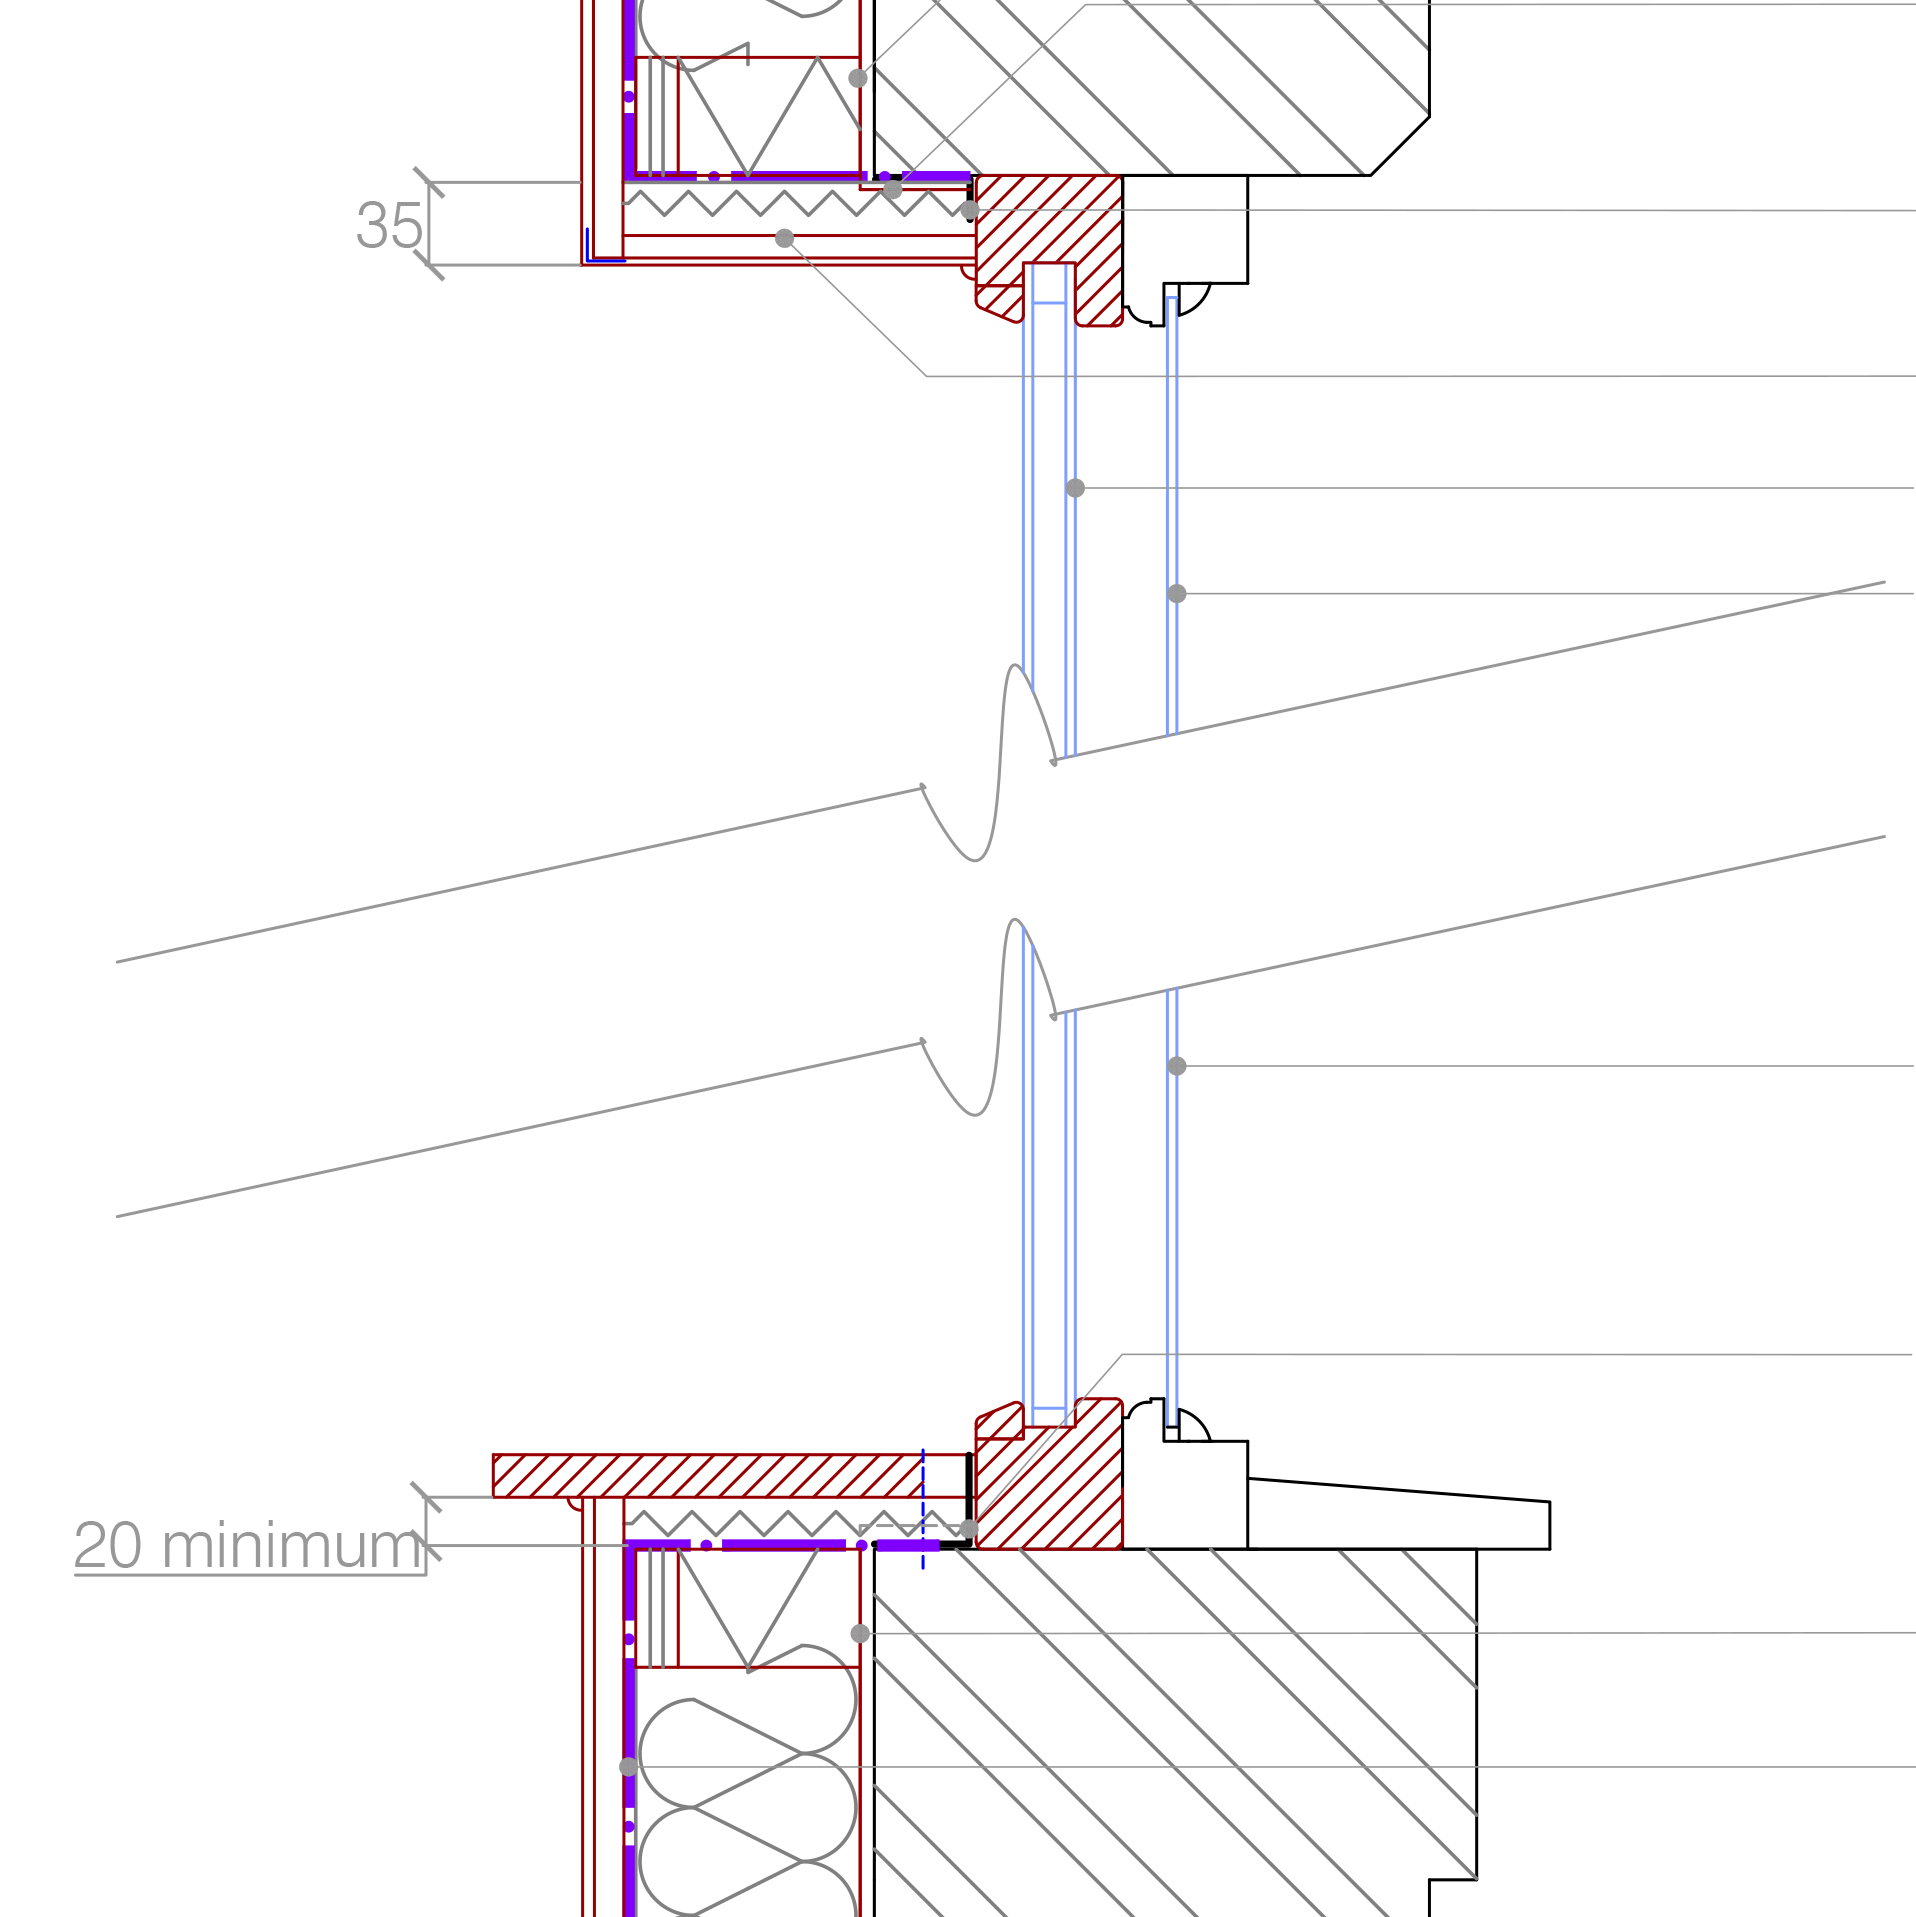 IWI to retained window with secondary glazing | Retrofit Pattern Book